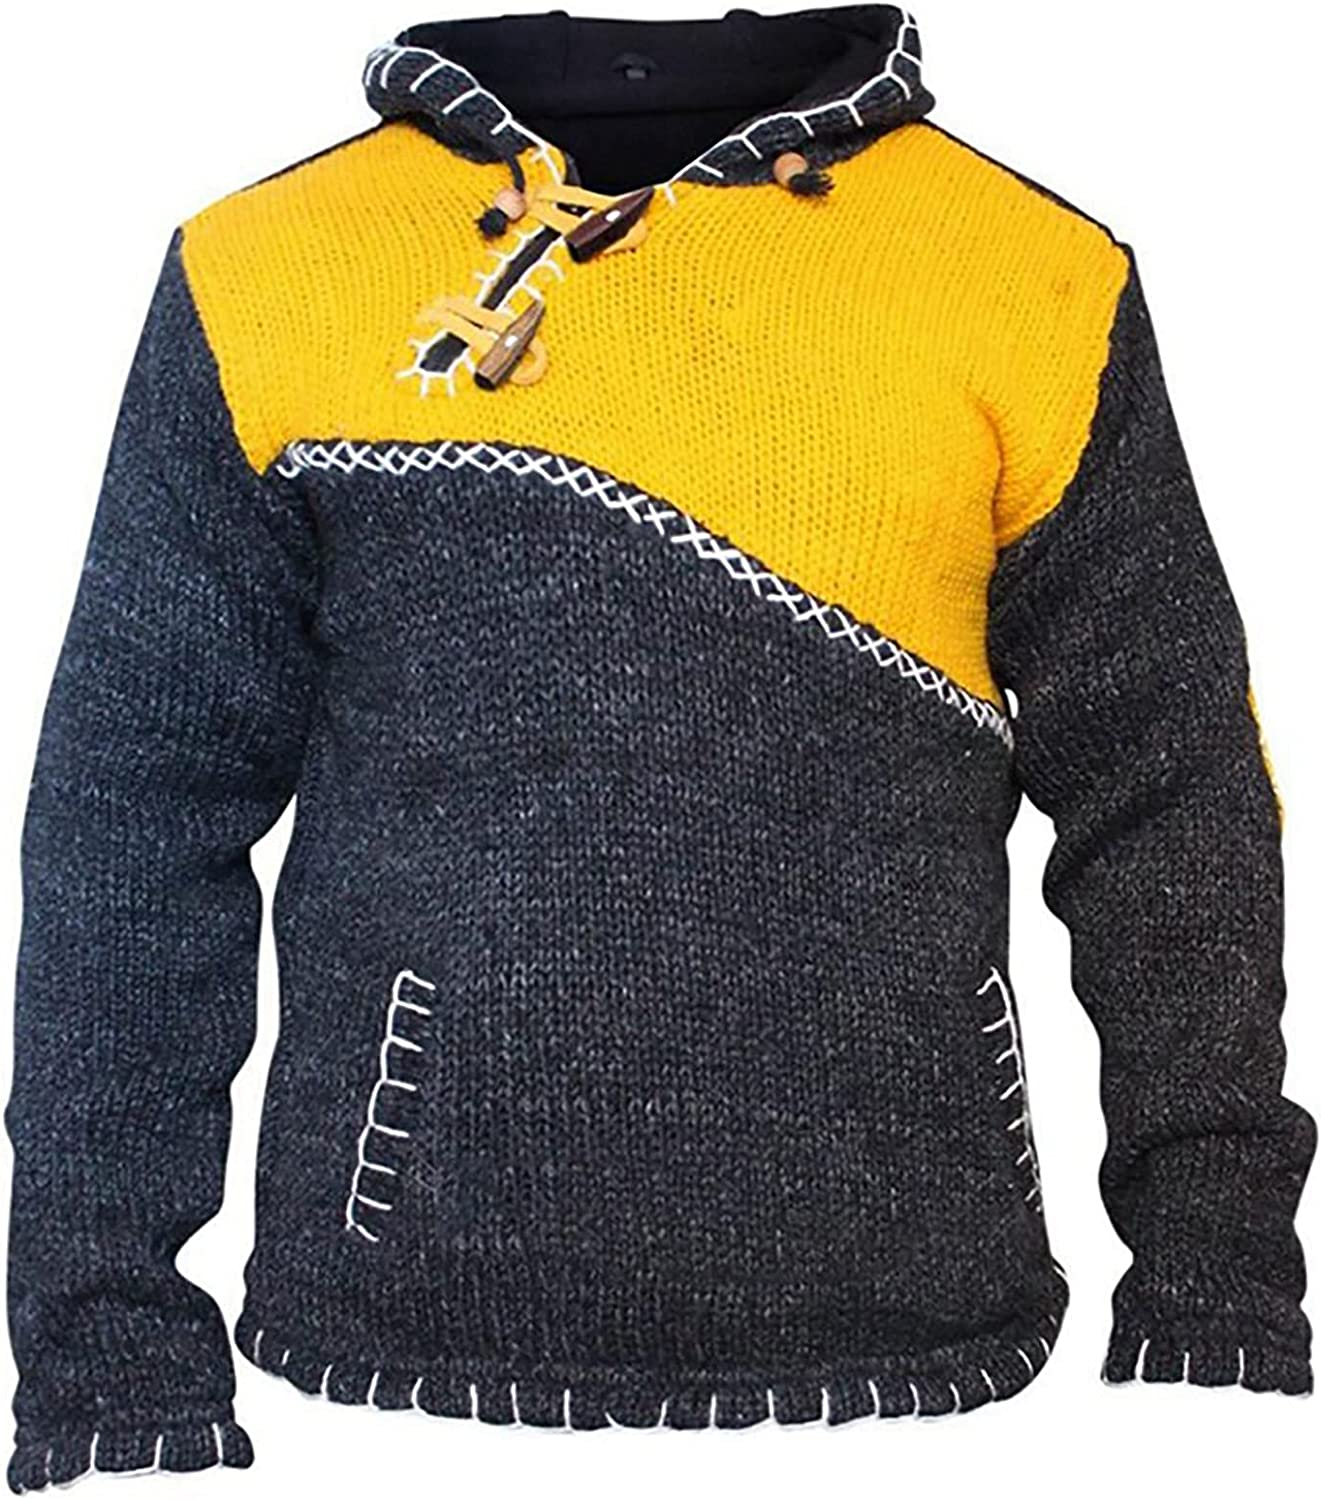 Men's Hooded Knitwear Sweater Fashion Retro Splicing Loose Plus Size Mixed Color Hoodies Pullover Sweatshirt